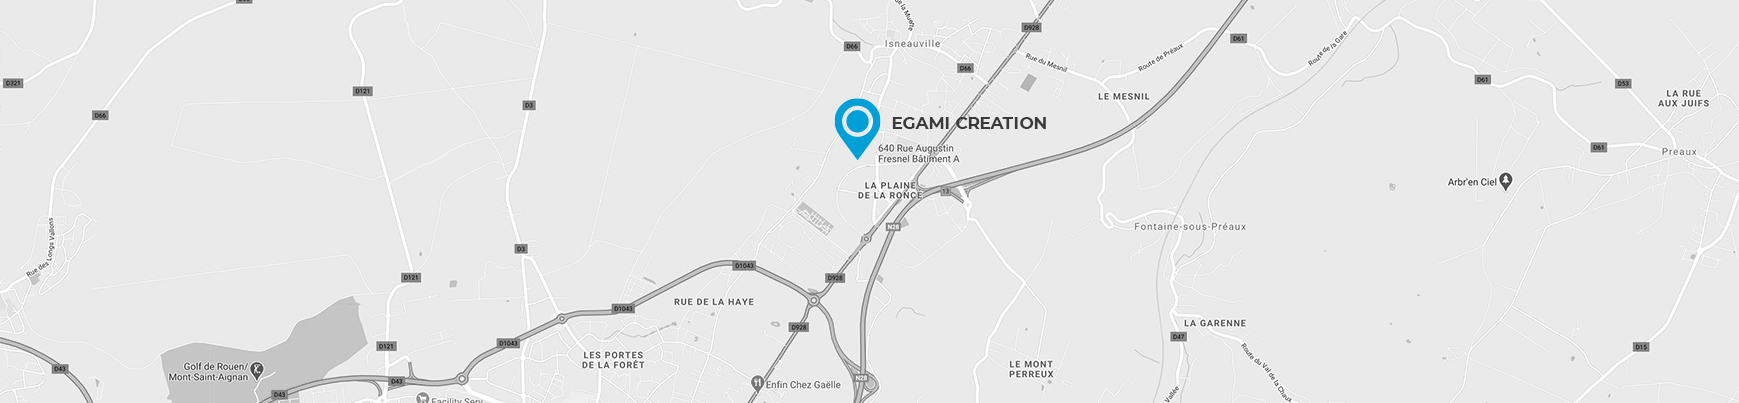 Egami Creation, agence de communication Rouen